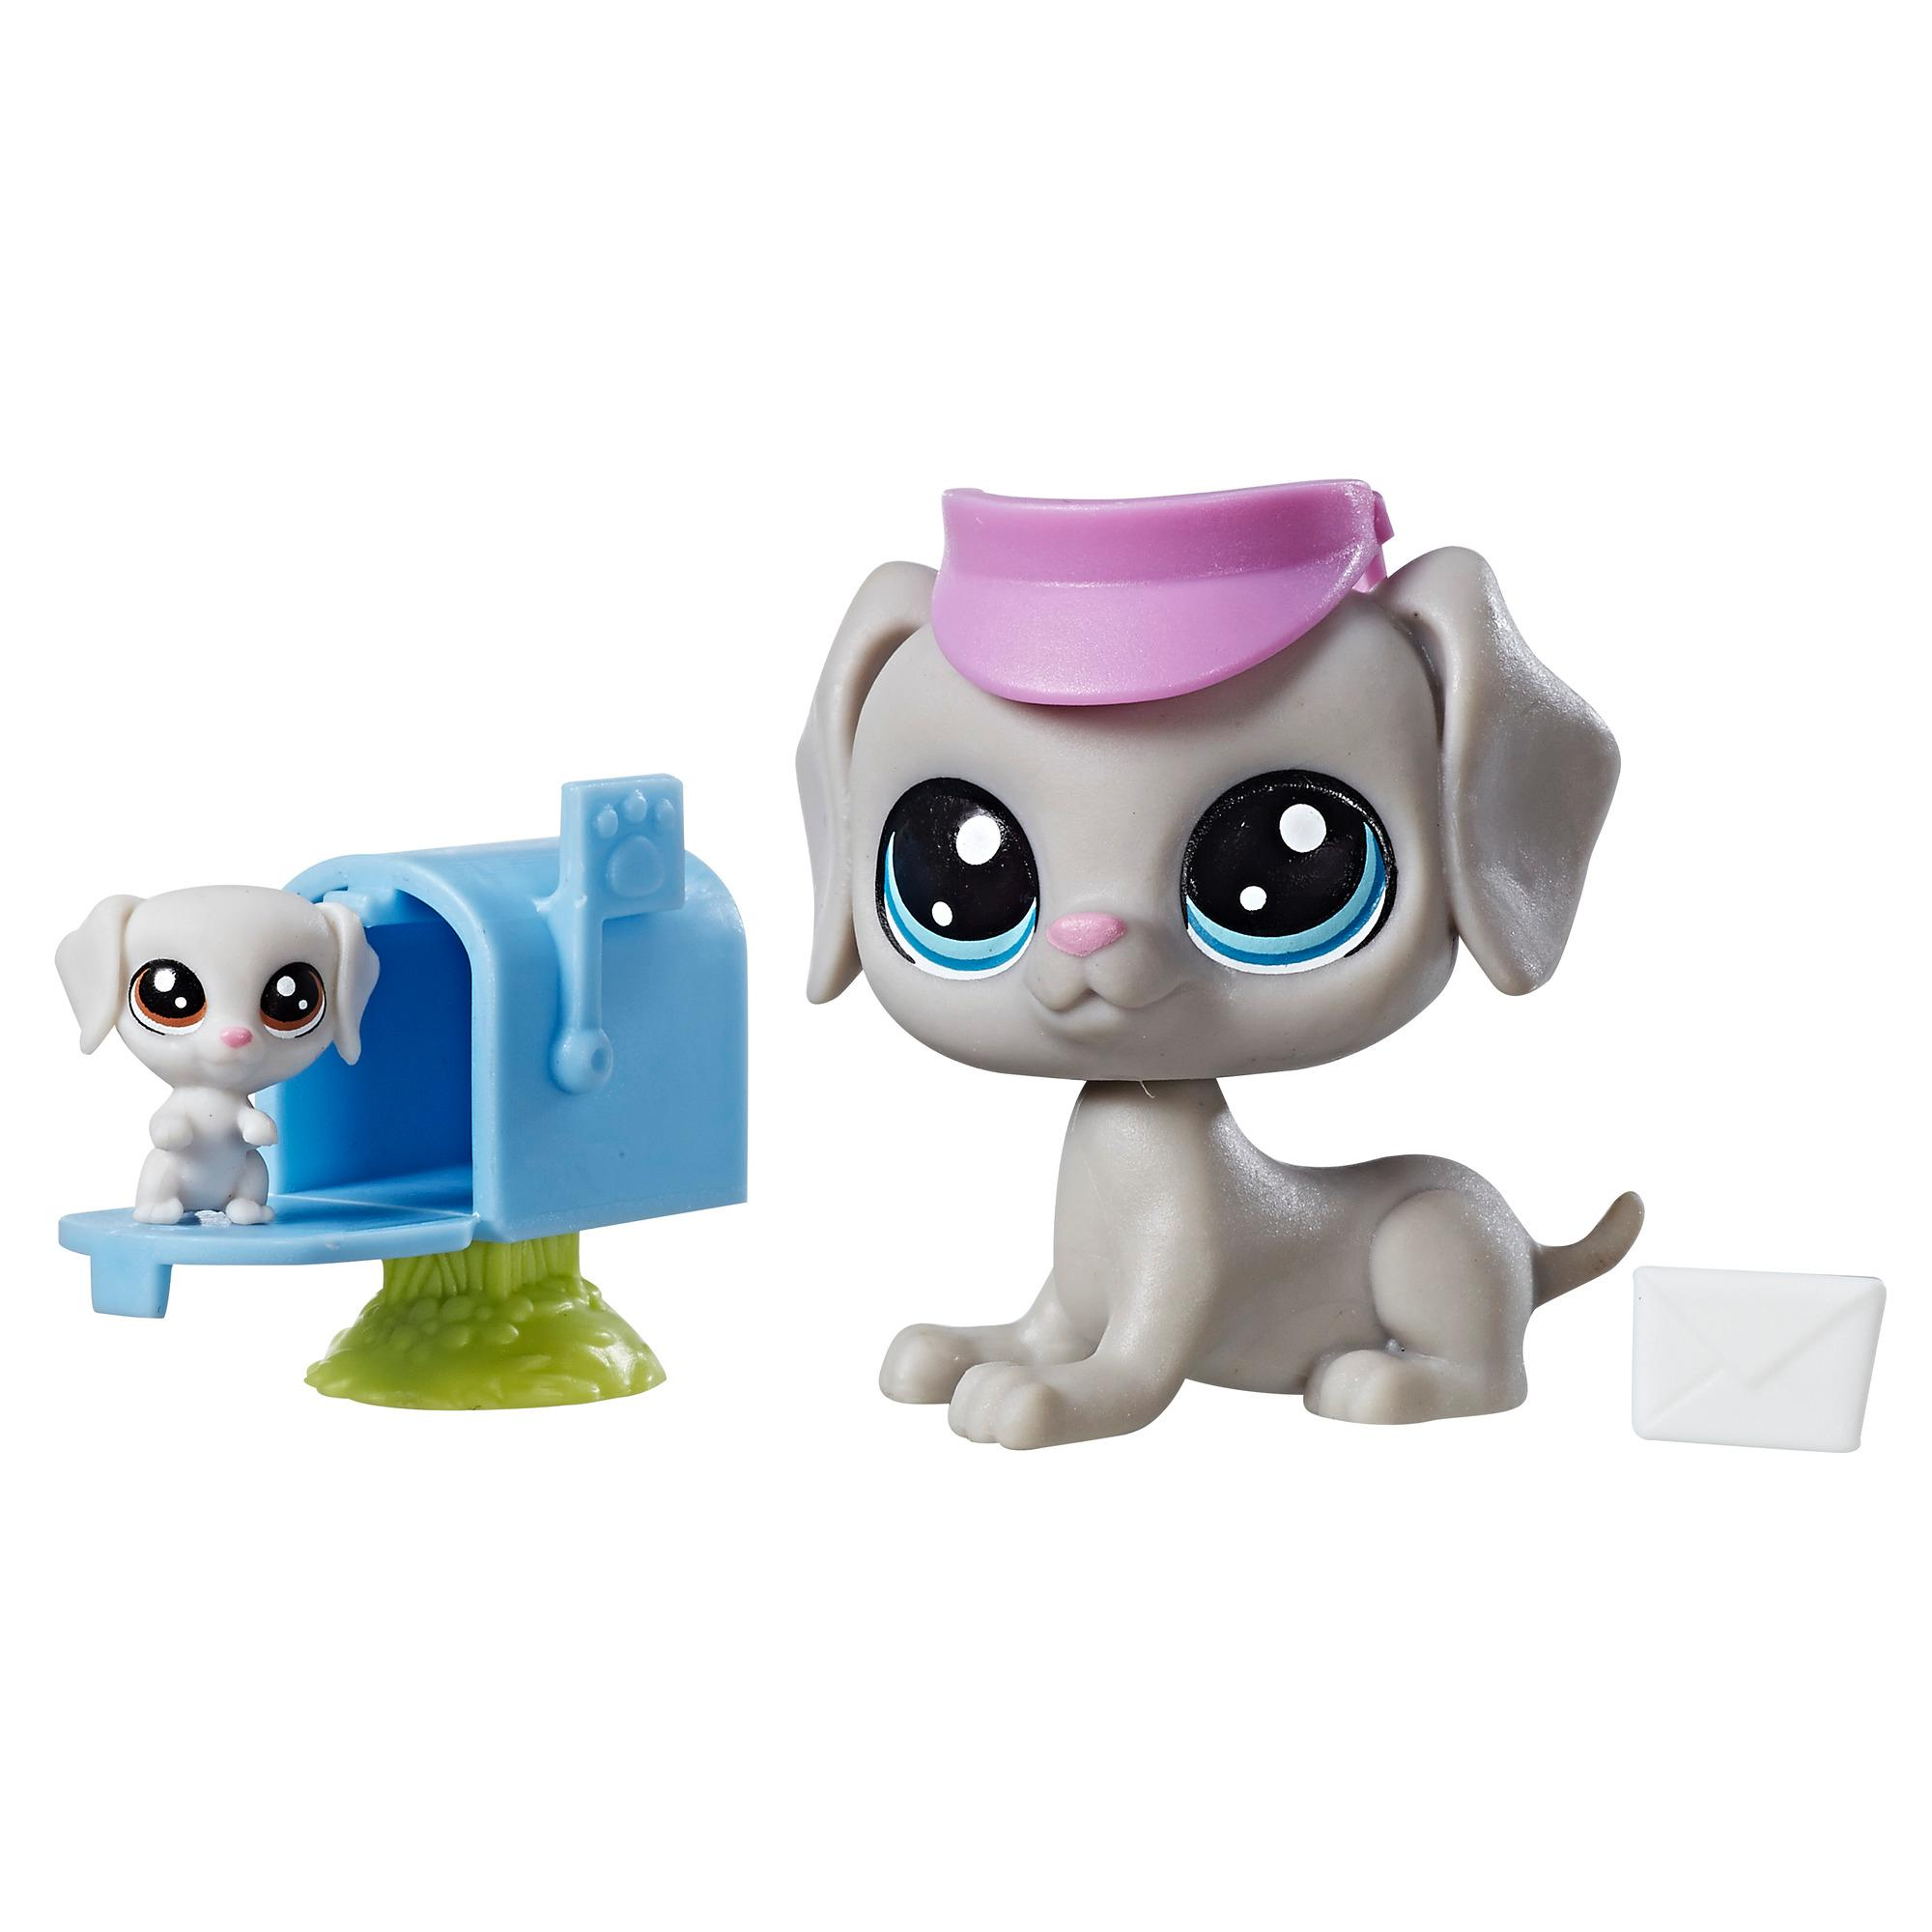 Littlest Pet Shop Bill Weimaran.Bertie Weimaran